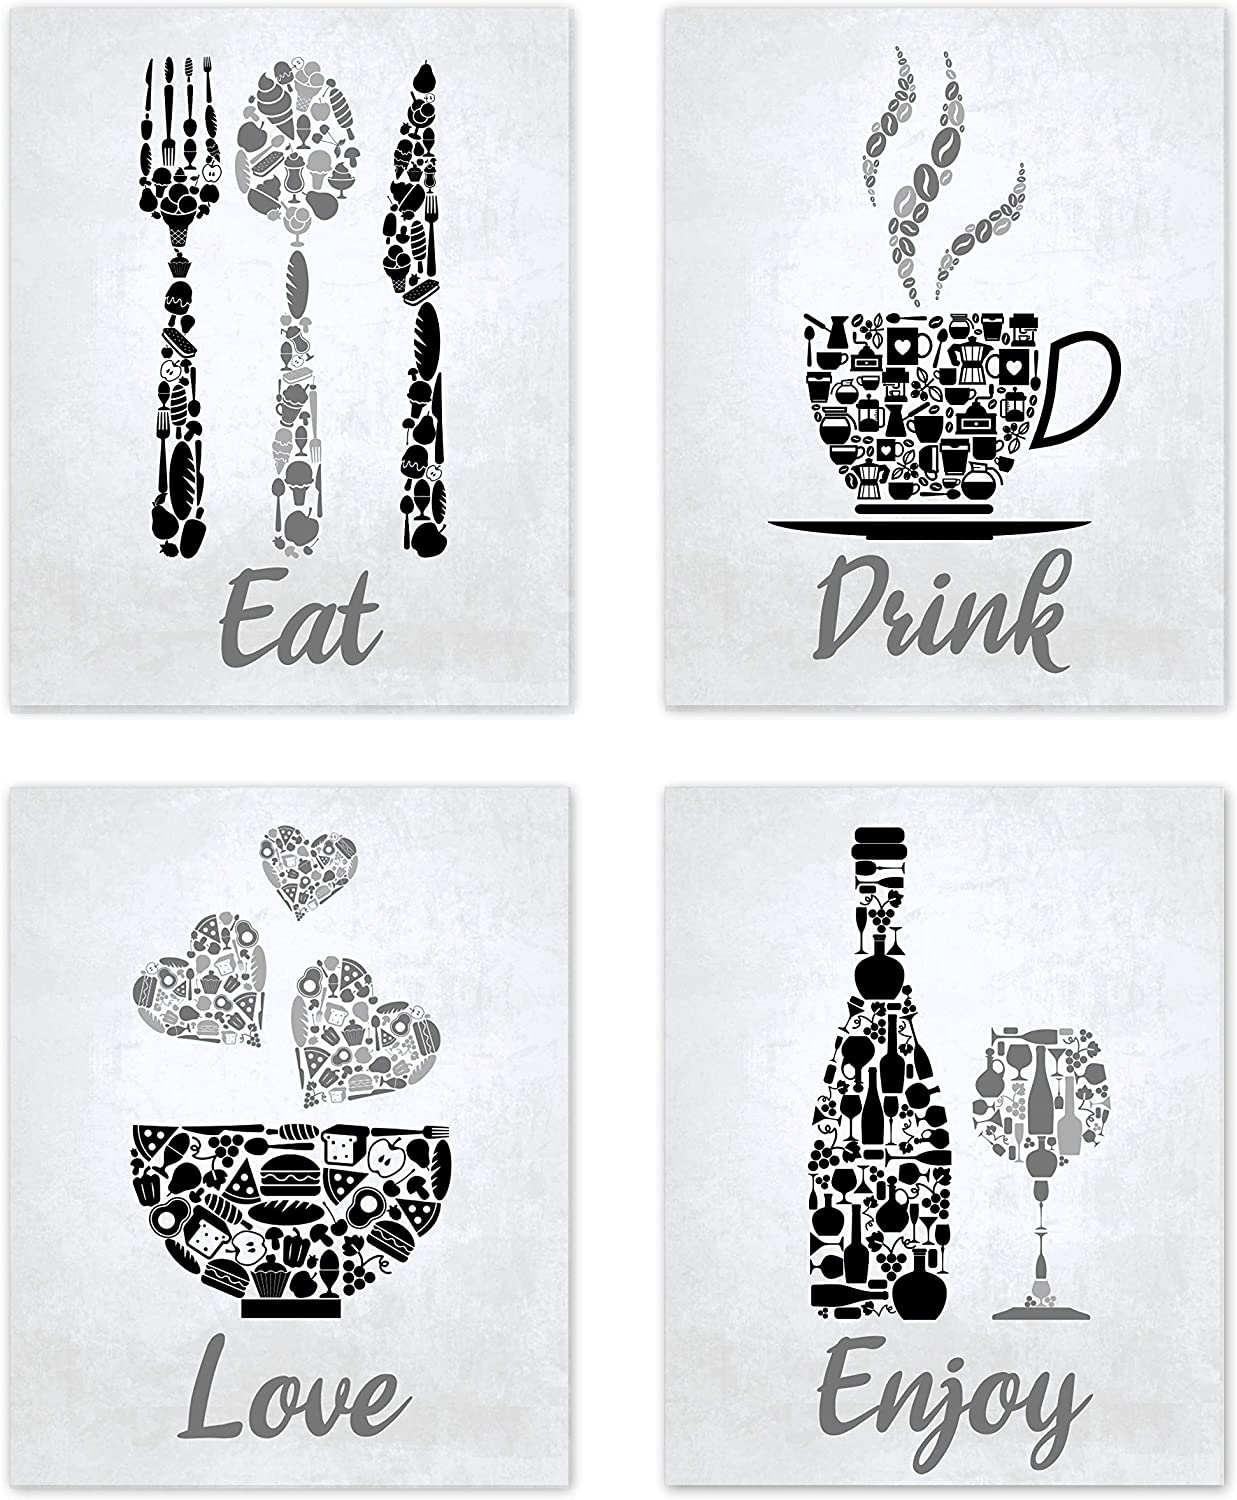 "Black Grey White Mosaic Vintage Inspirational Kitchen Restaurant Cafe Bar Wall Art Decorations Eat Drink Love Wine Coffee Hearts Prints Posters Signs Sets for Rustic Farmhouse Country Home Dining Room House Decor Funny Sayings Quotes Unframed 8""x10"""